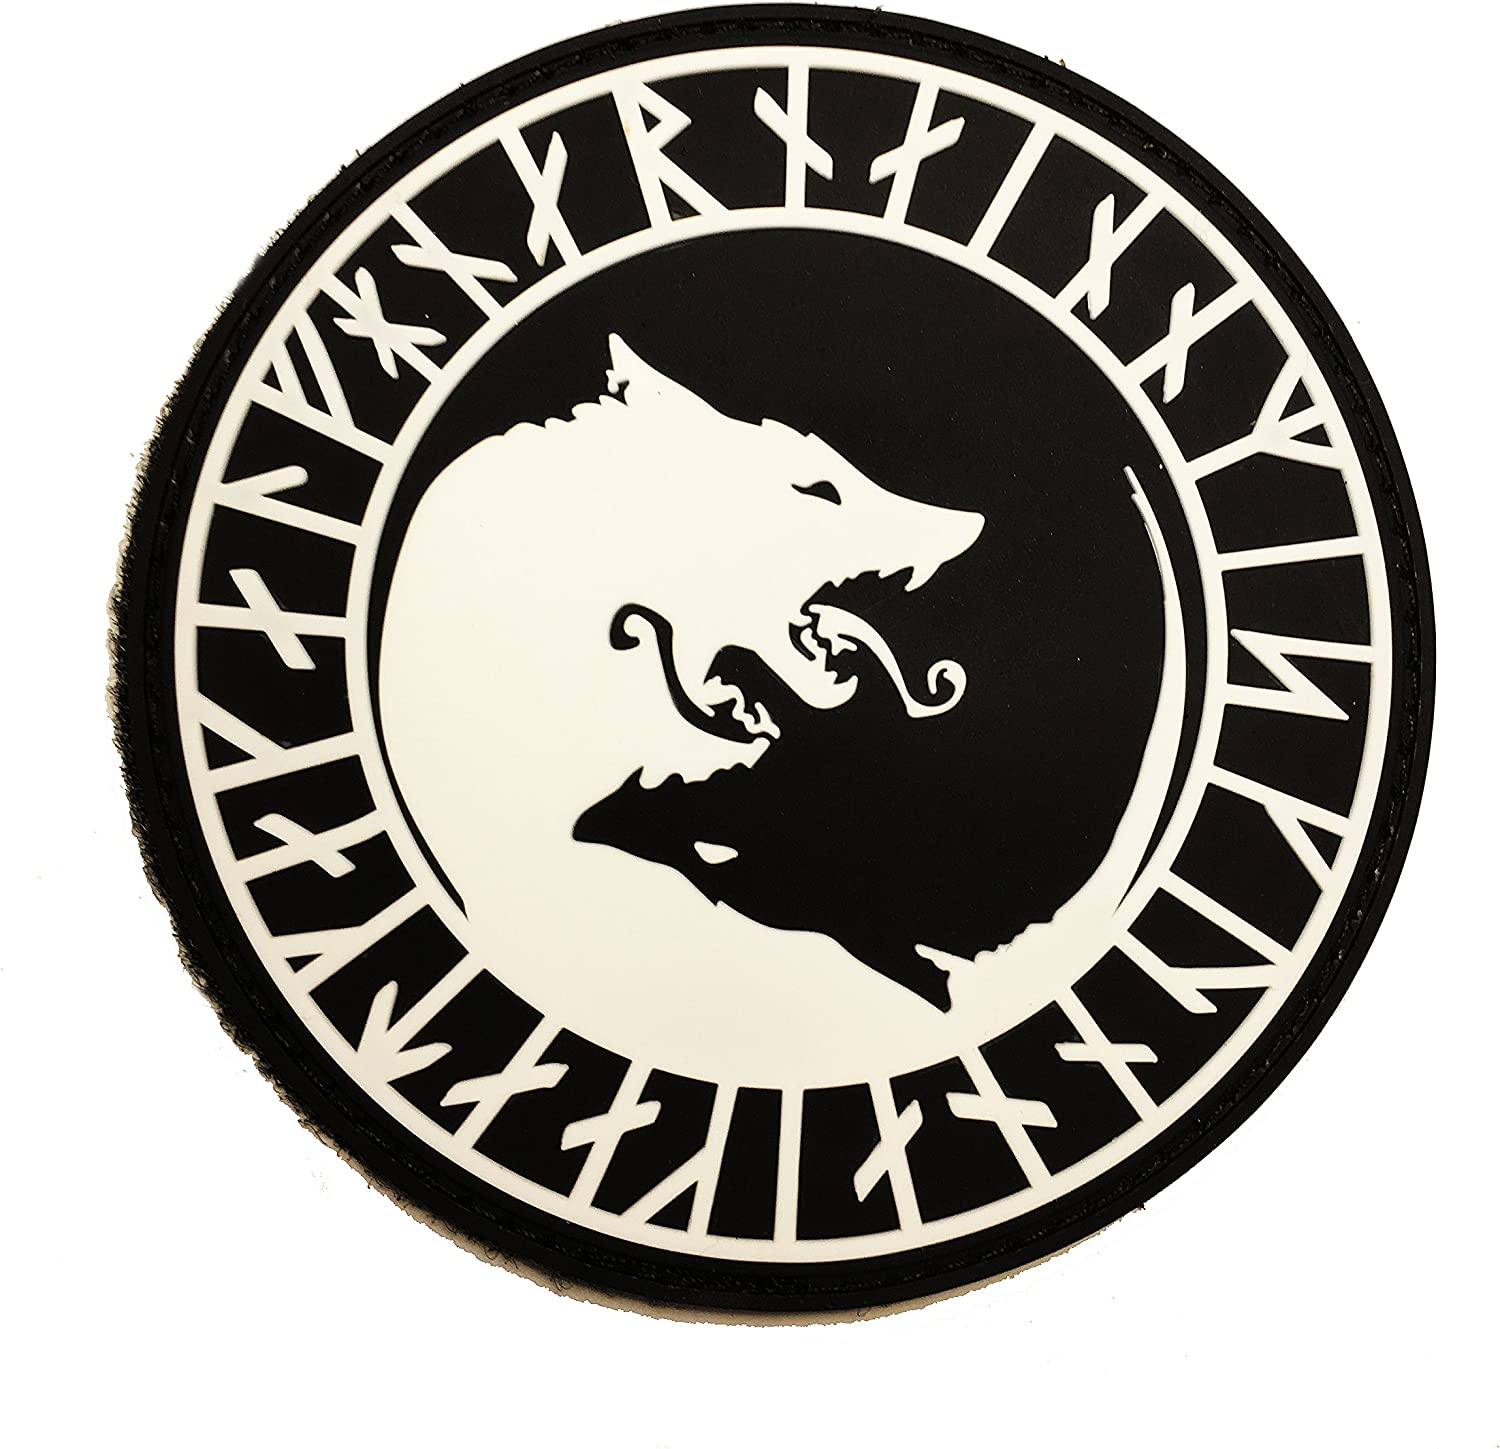 Amazon Com The Black Viking Berserker Ulfhednar No Mercy Only Violence Wolf Rune Pvc 3 5 Tactical Morale Patch Hook Loop Arts Crafts Sewing